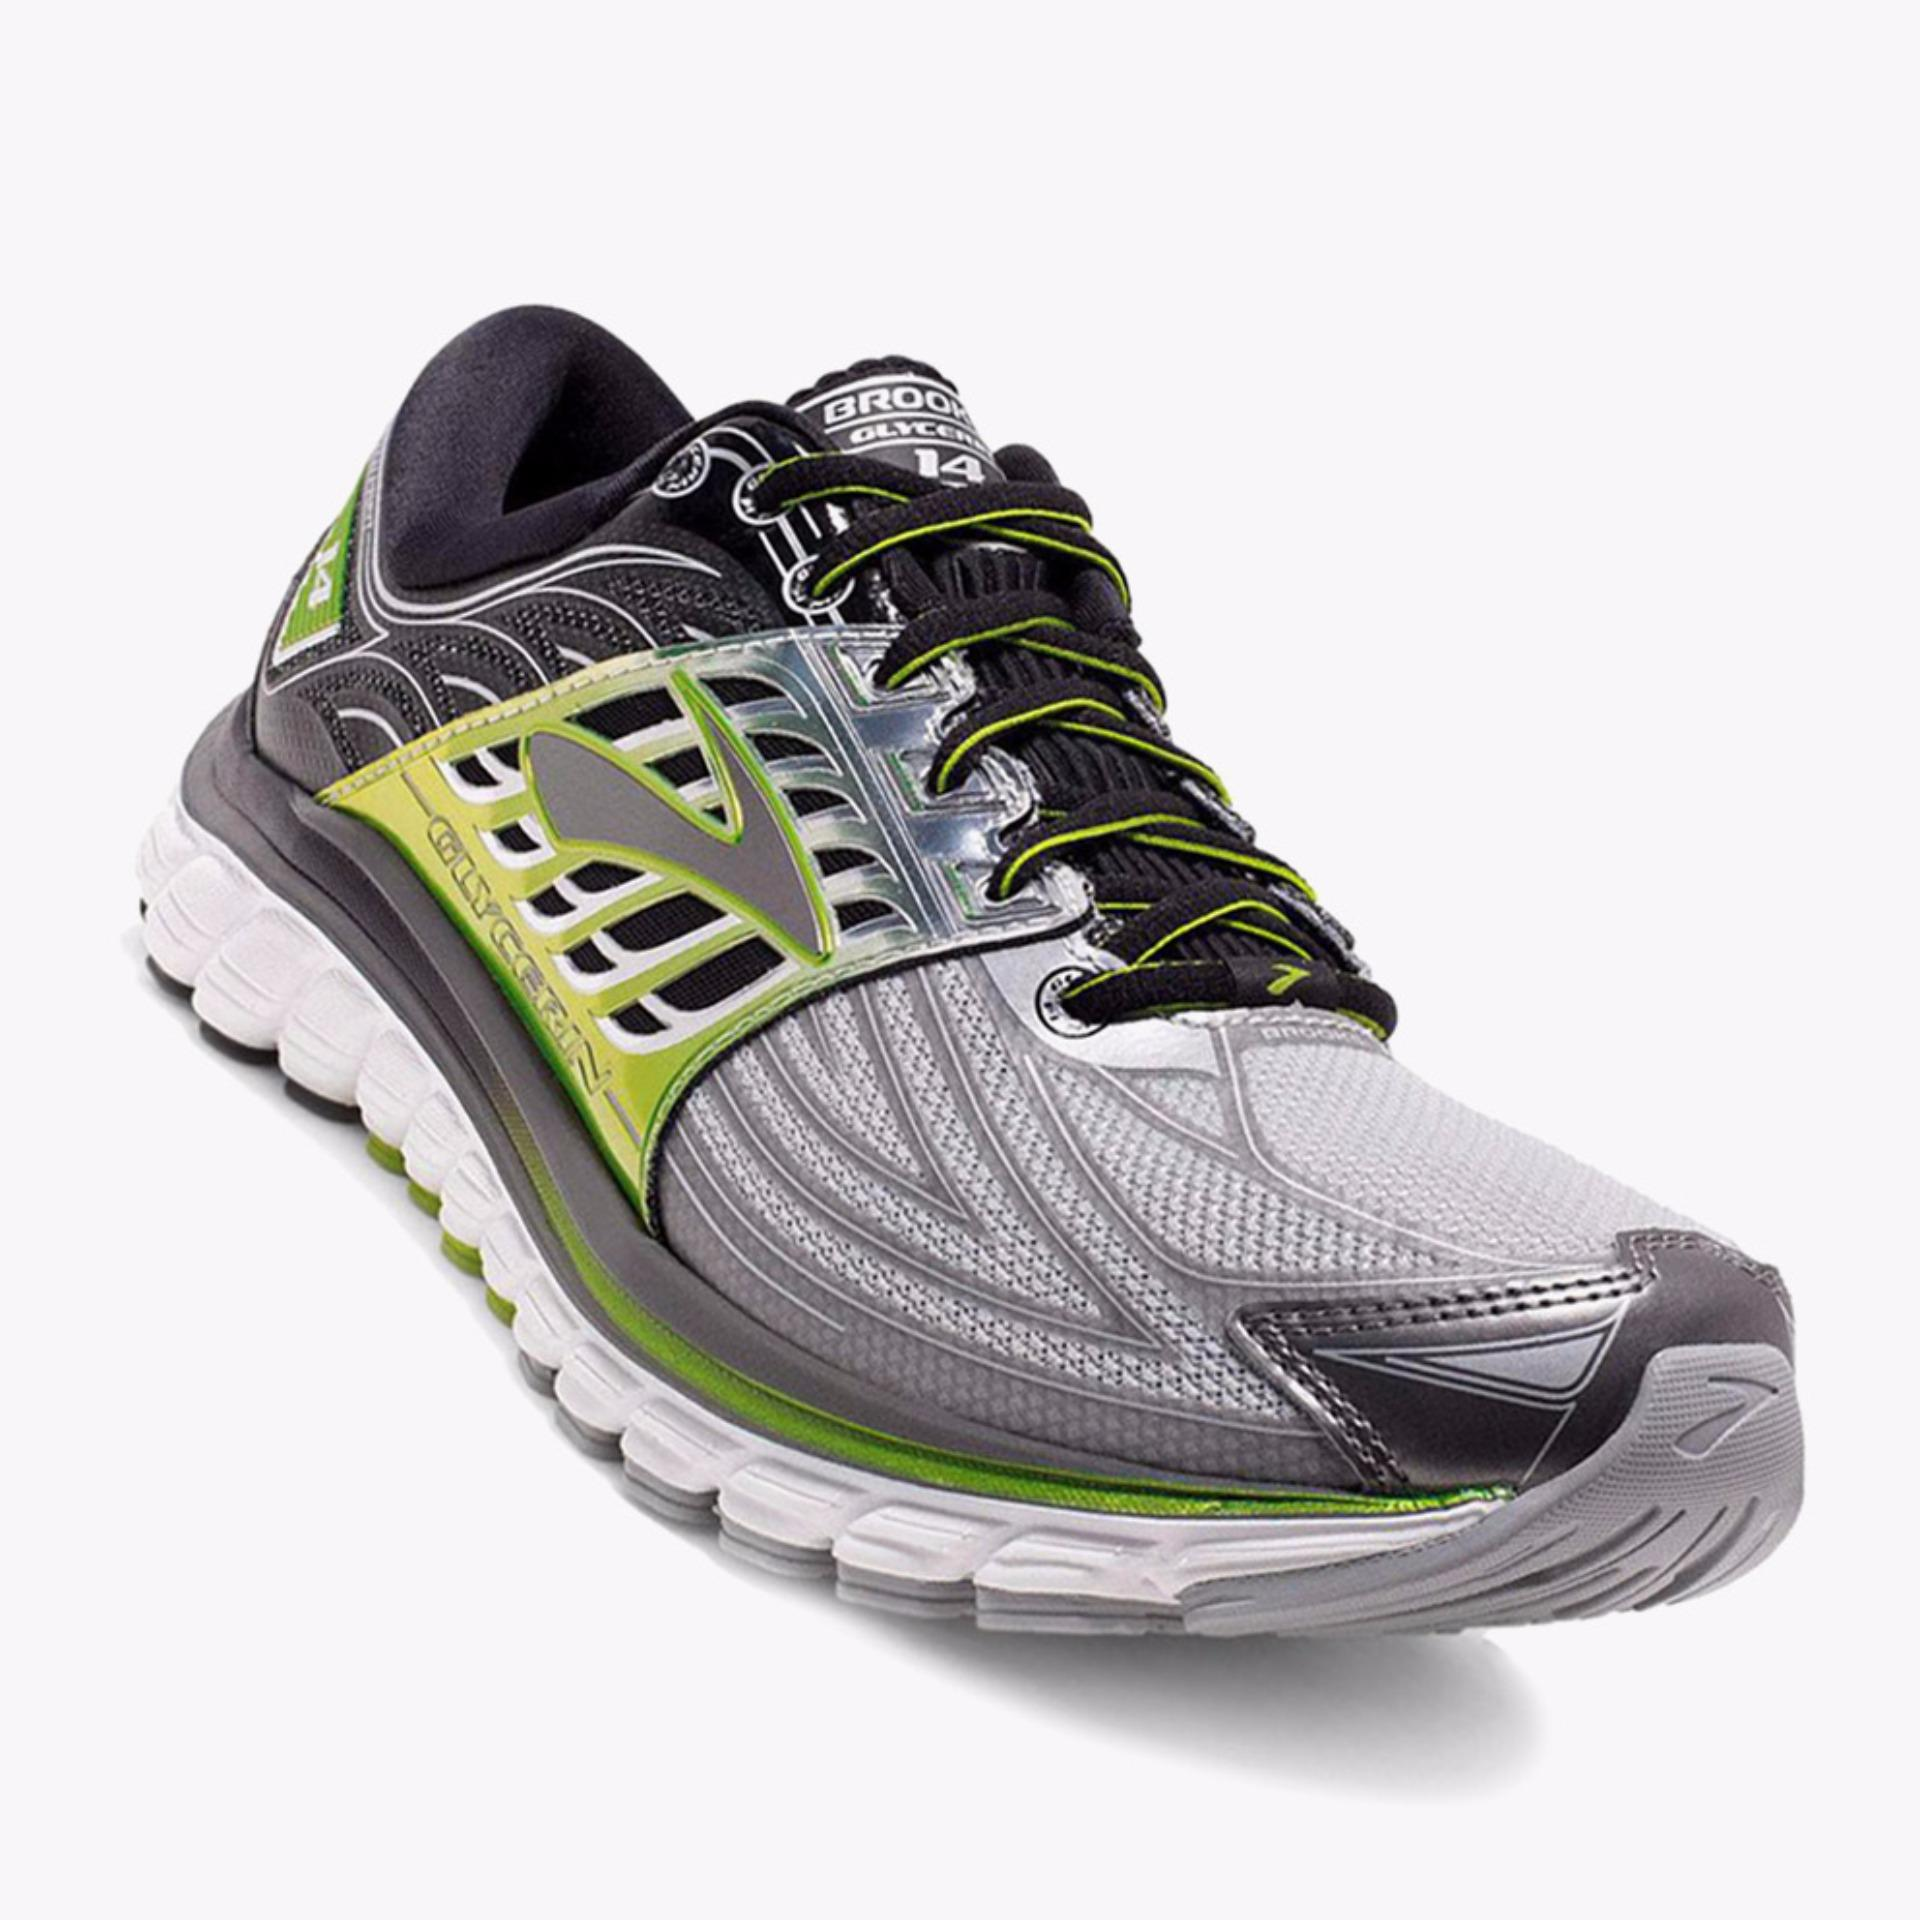 Brooks Glycerin 14 Men's Running Shoes - Normal D - Abu-Abu - Brand Day